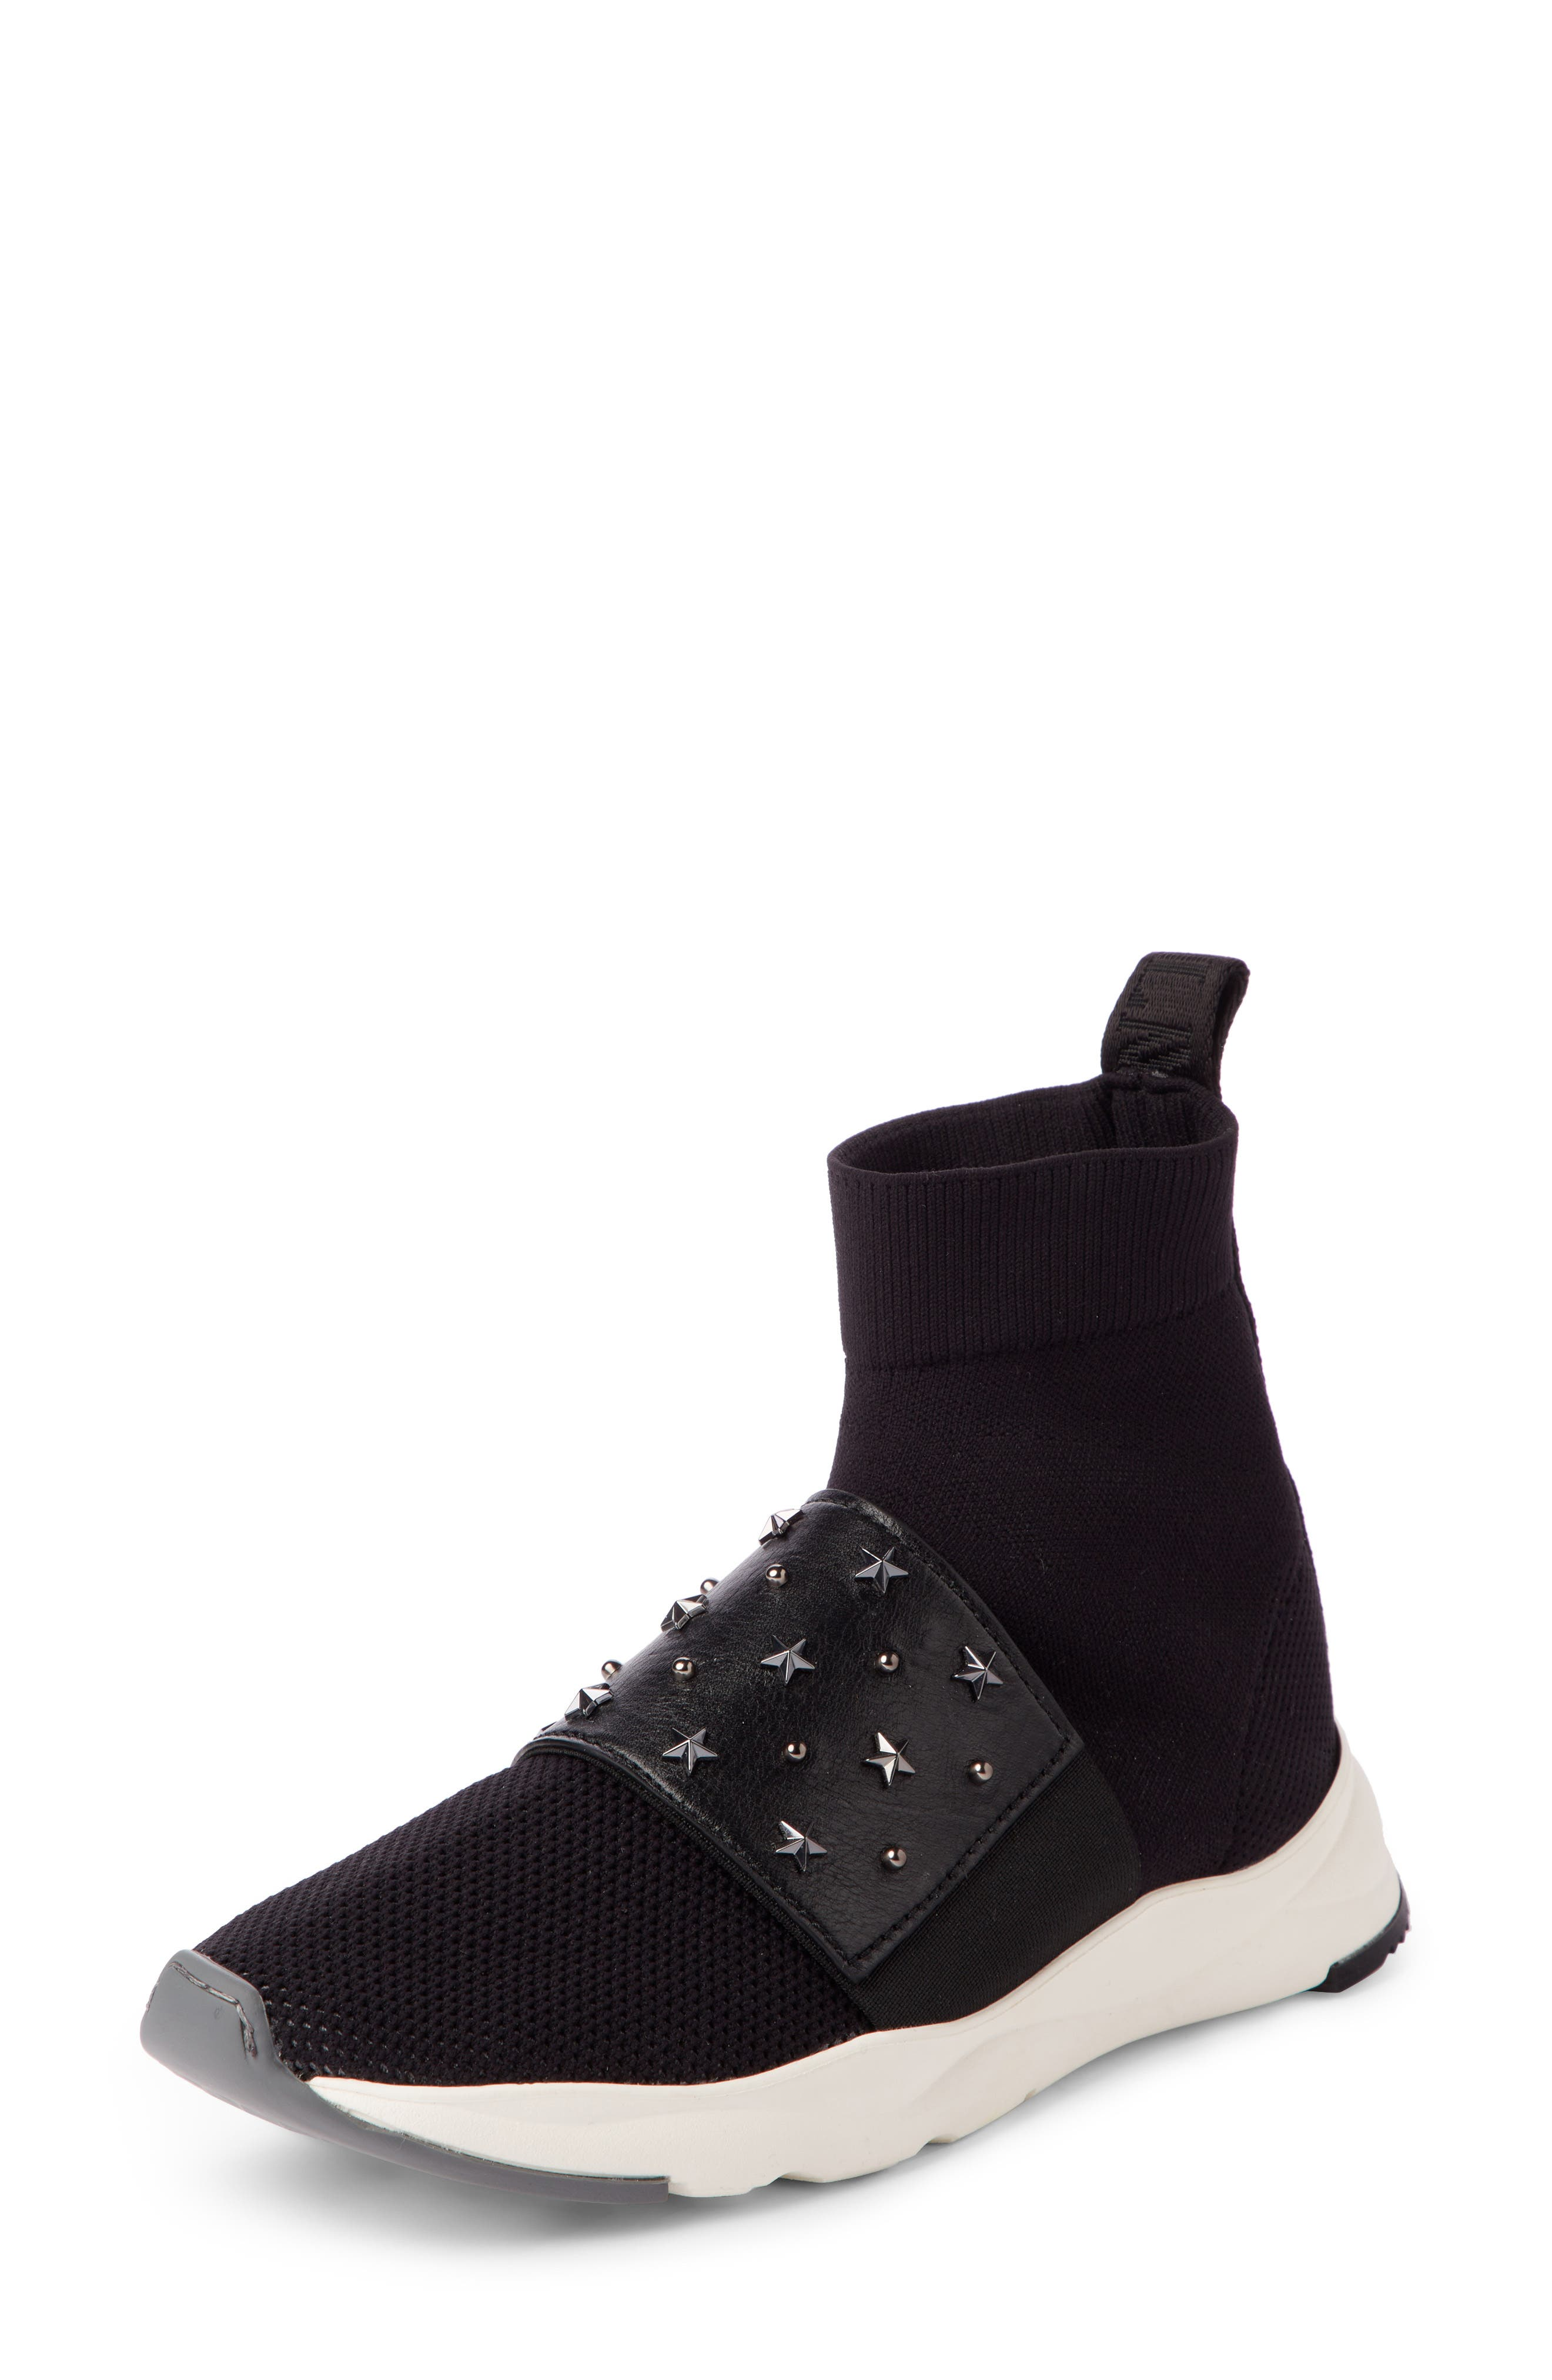 Cameron Studded Sock Sneaker,                         Main,                         color, Black